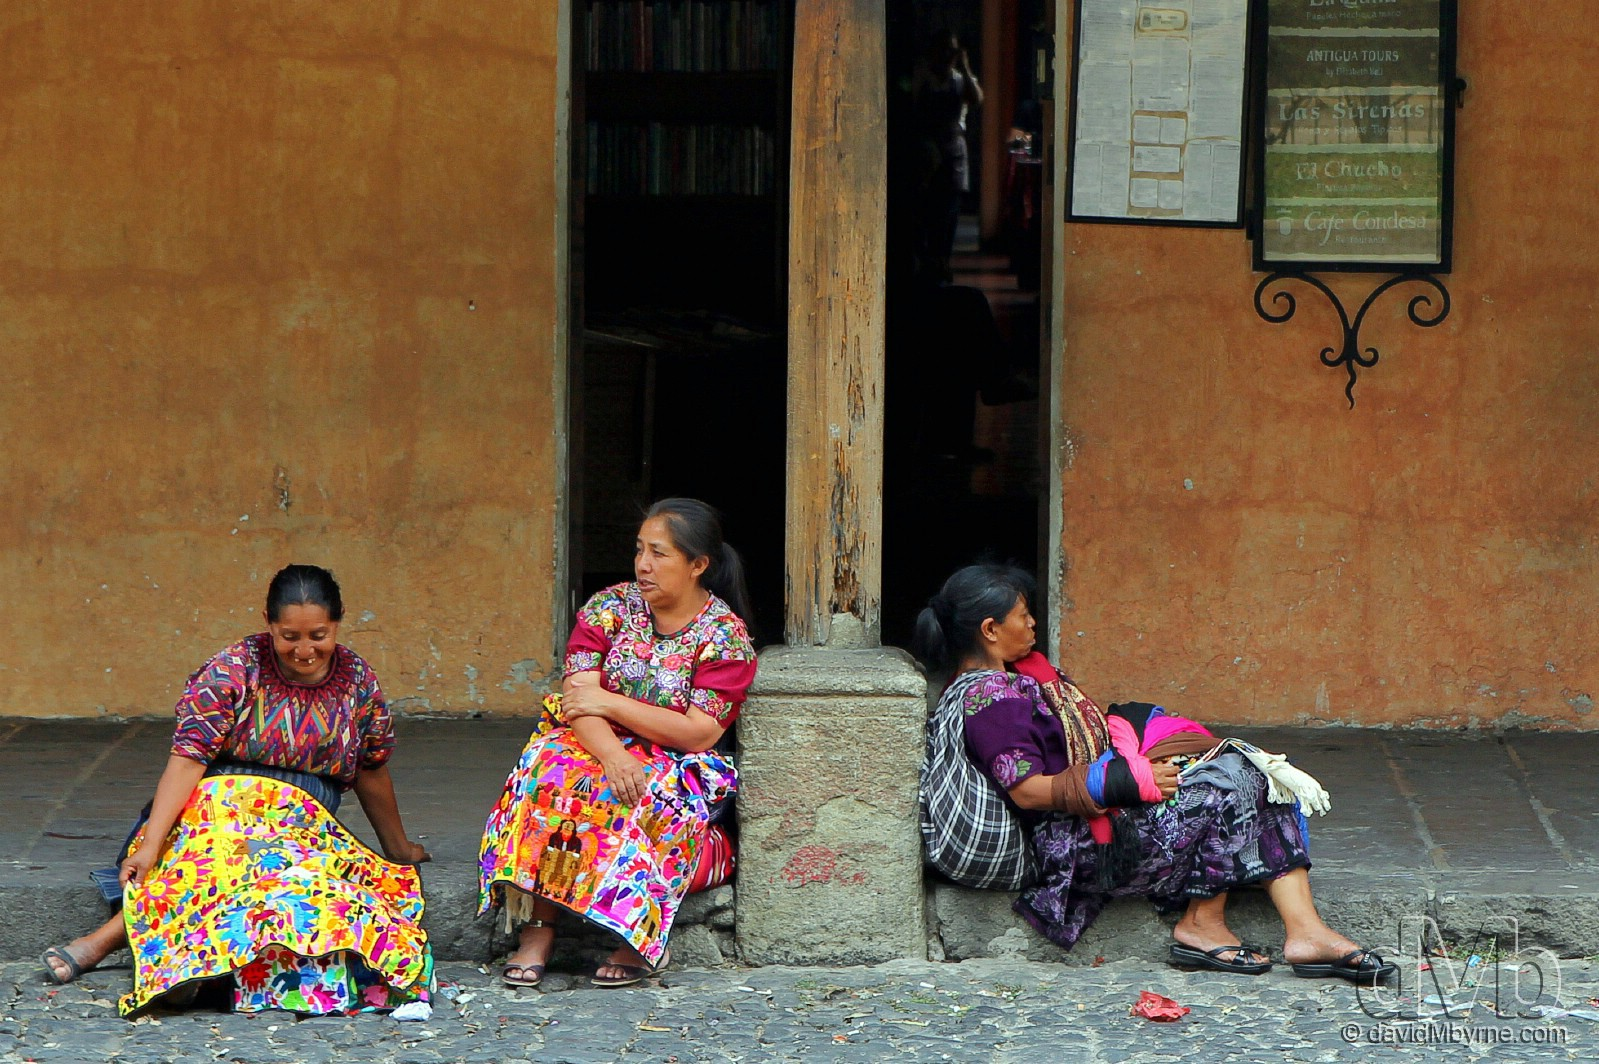 Three Mayan ladies taking a break from peddling their wares by the edge of Parque Central, Antigua, Guatemala. May 19th, 2013 (EOS 60D || Tamron 28-75 || 75mm, 1/250sec, f/4.5, iso100)